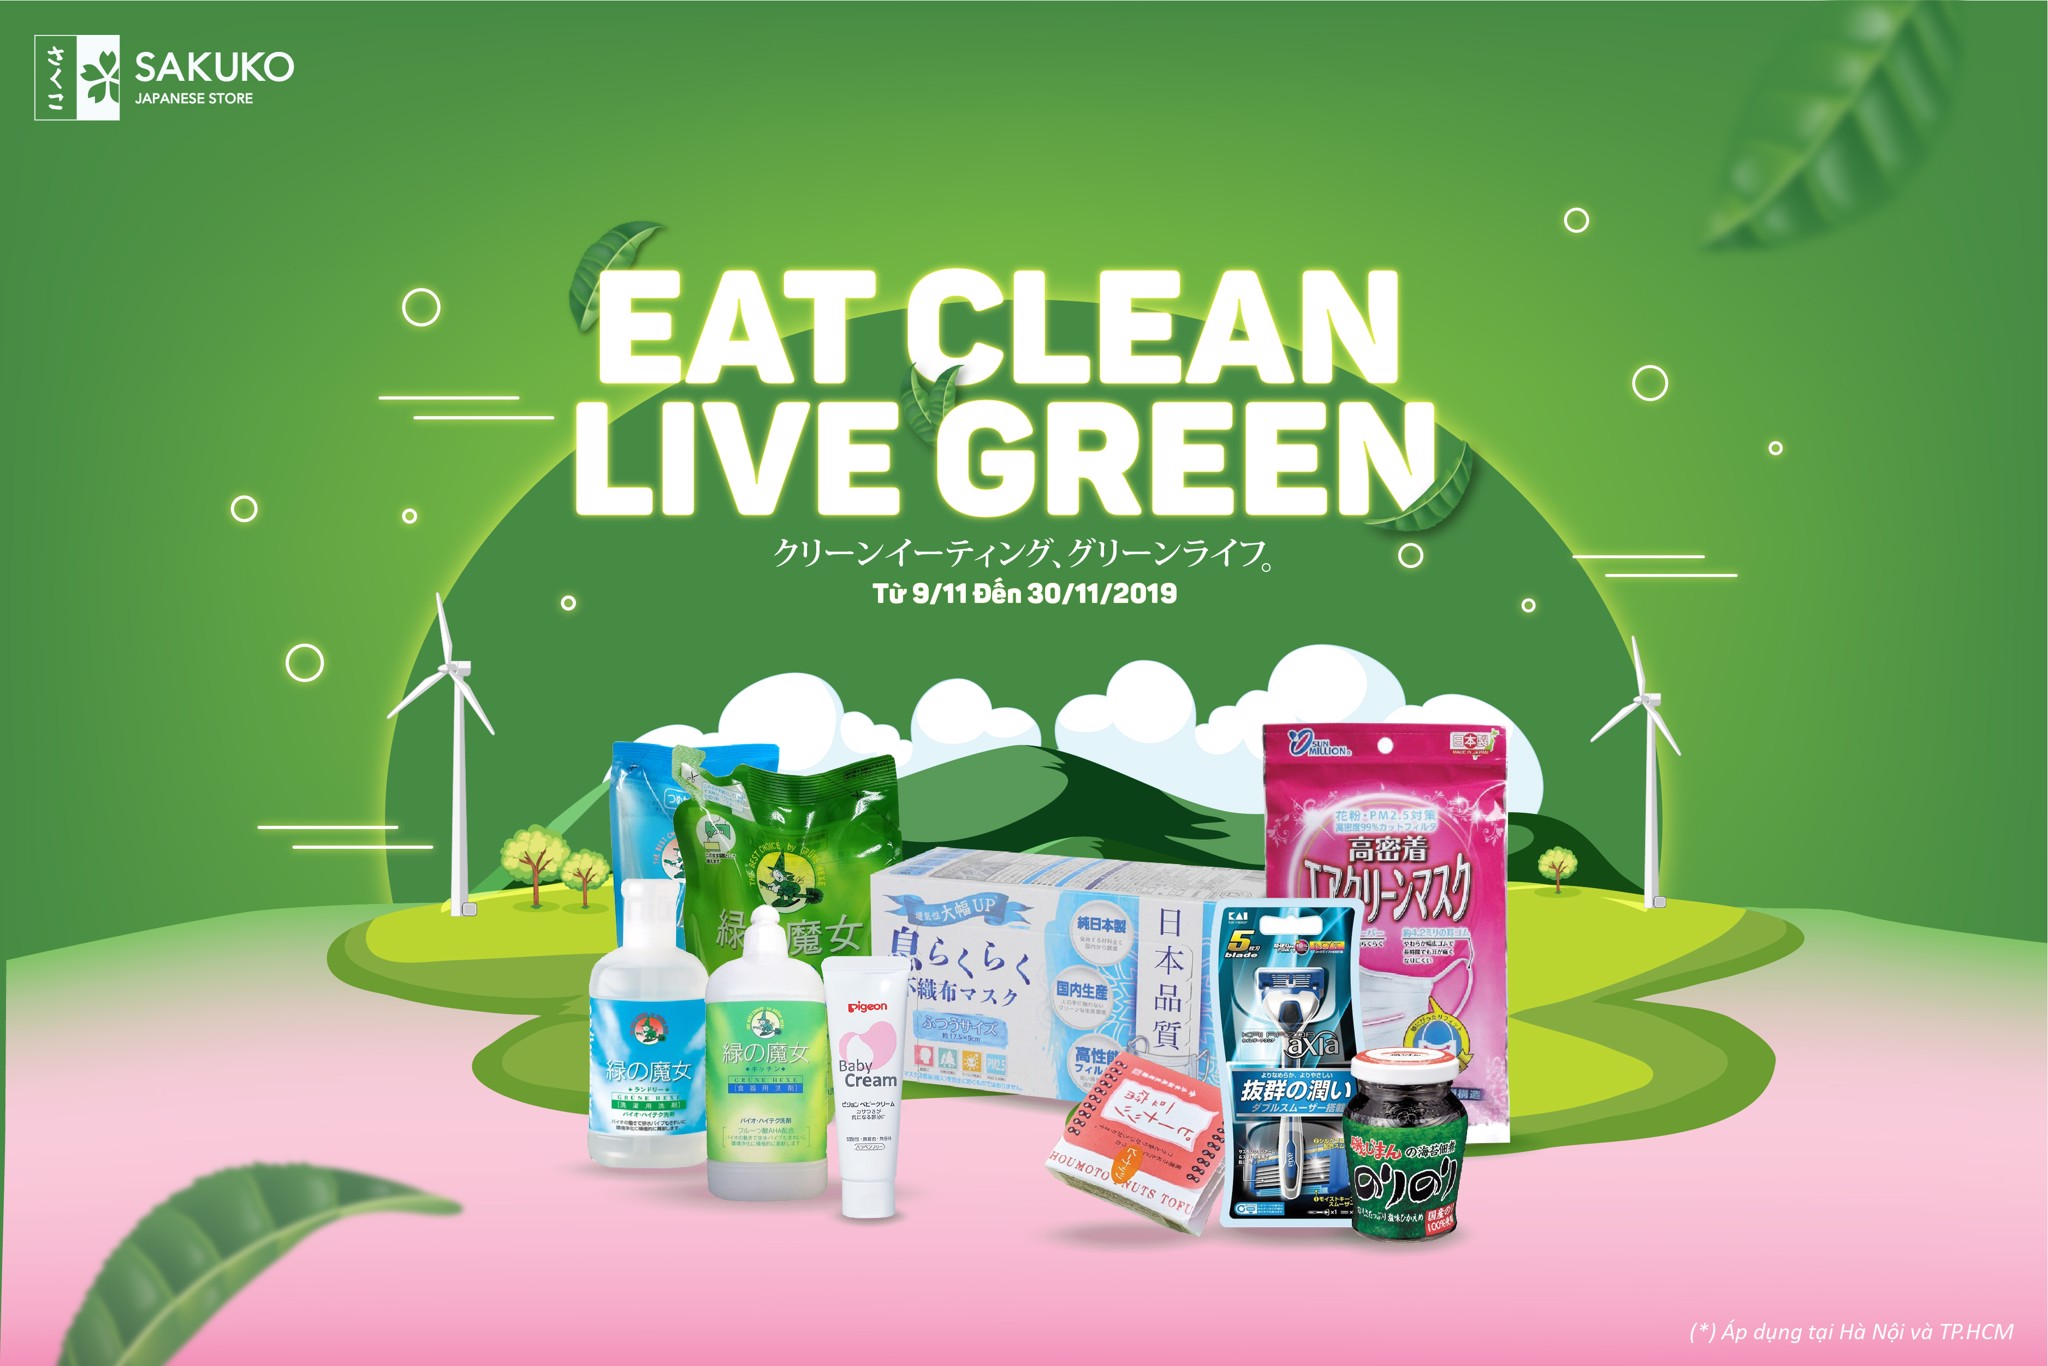 EAT CLEAN, LIVE GREEN